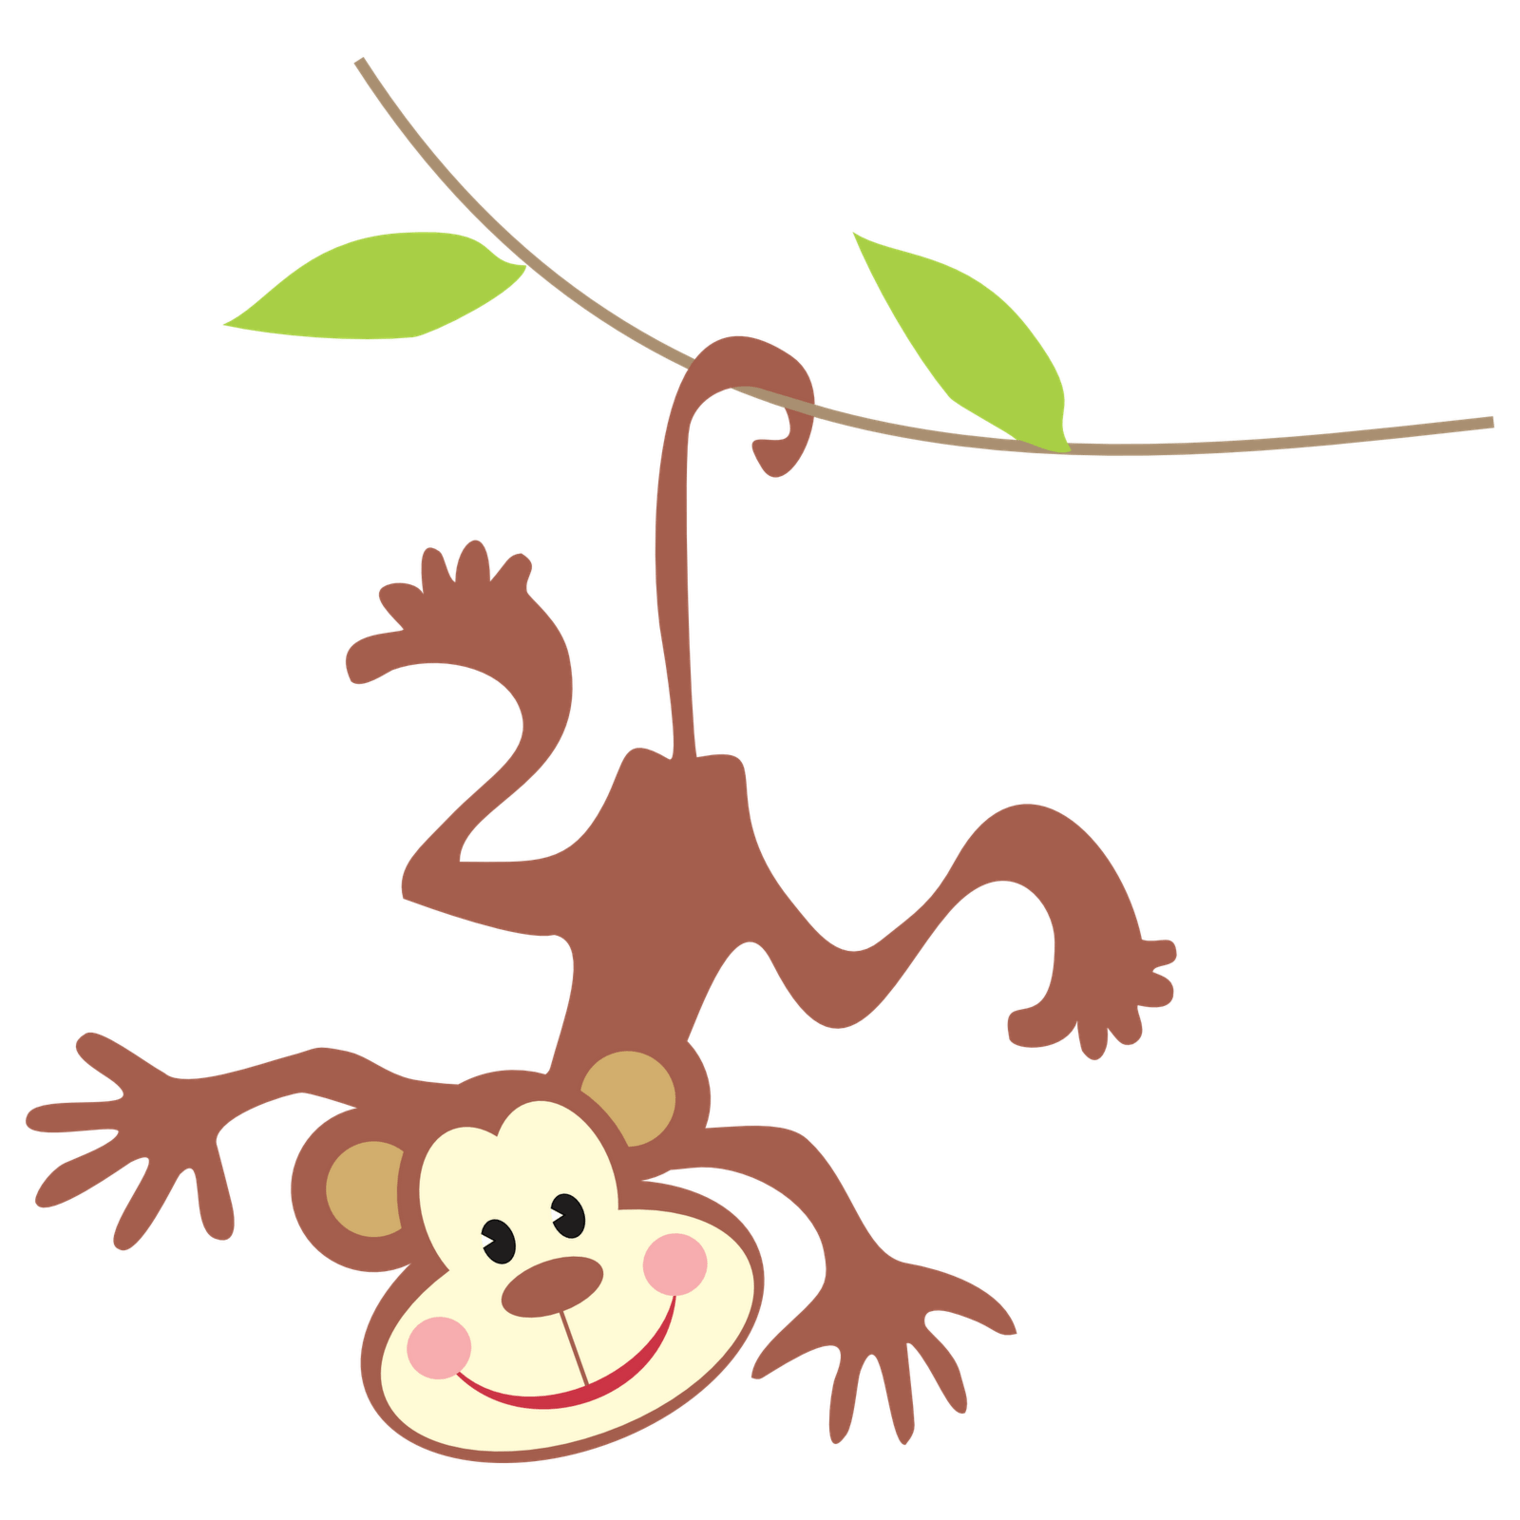 Snake clipart stretchy. Chunky monkey cliparts zone